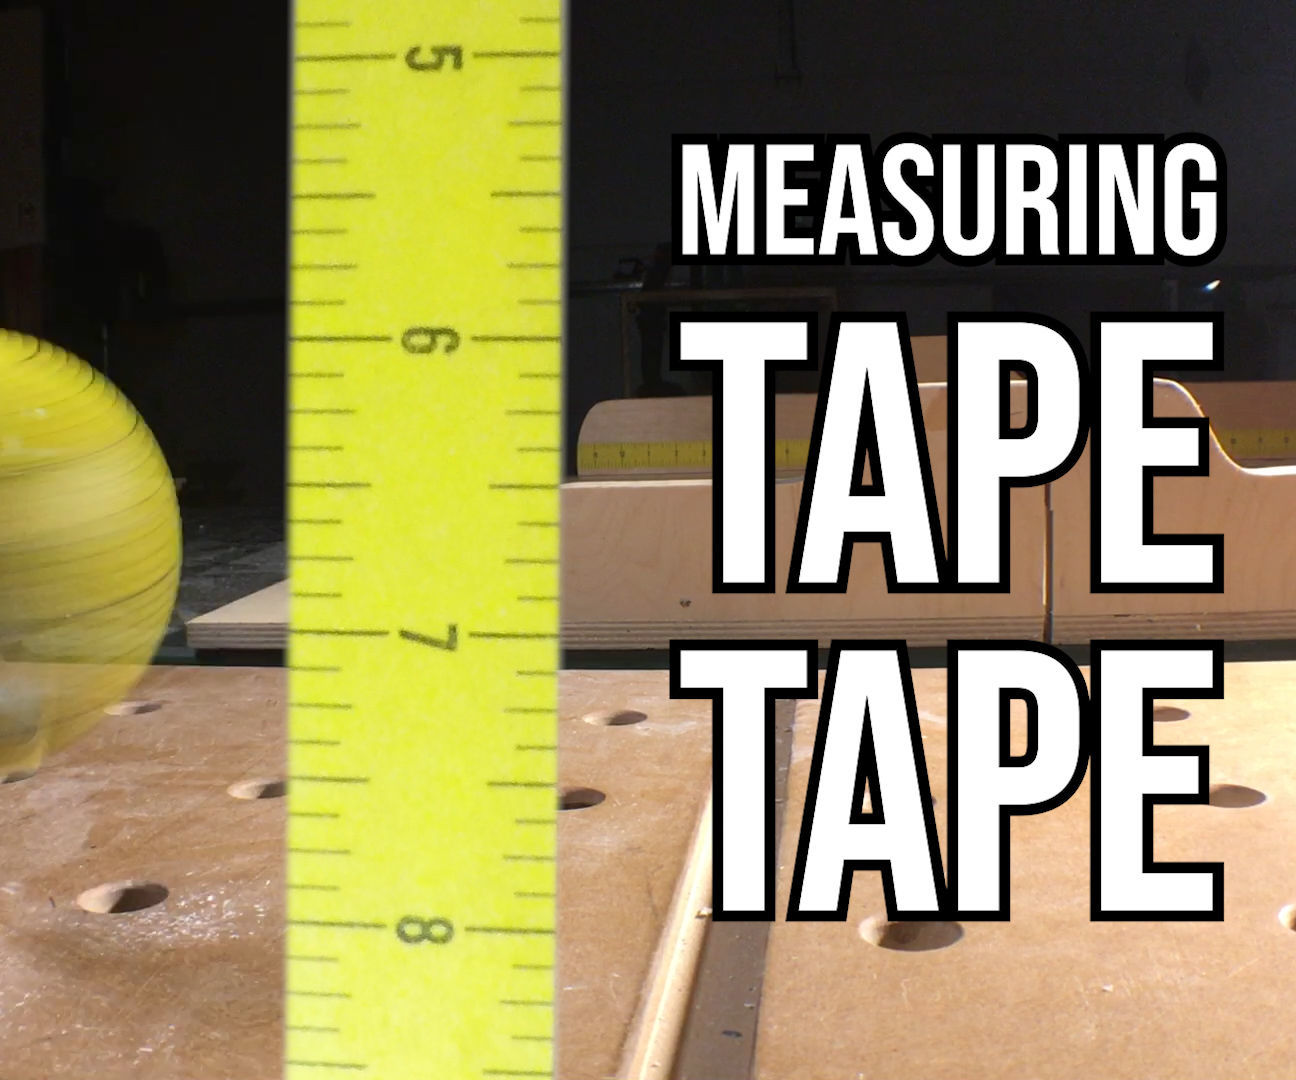 Using Measuring Tape Tape for Sacrificial, Incremental Bliss